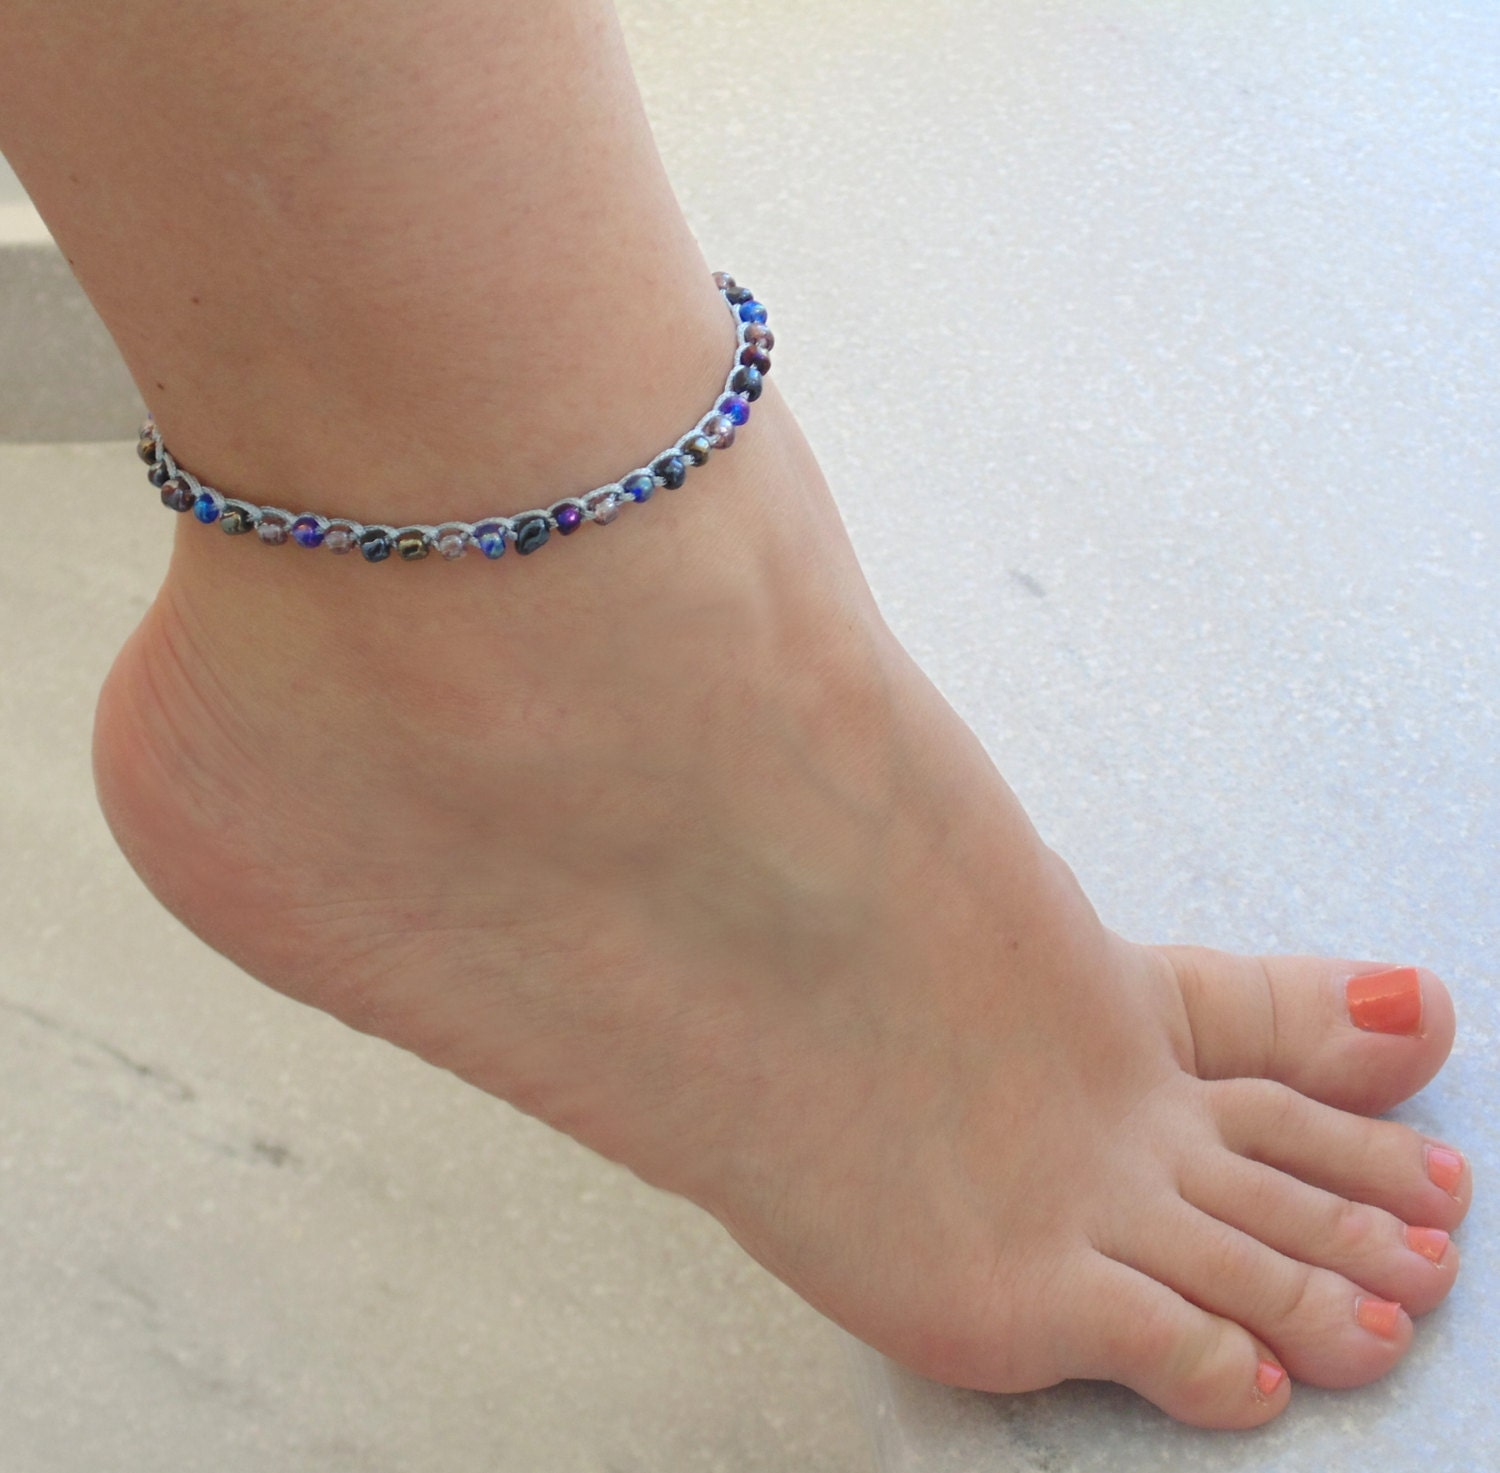 bracelets anklets can pin stones fine bracelet i ankle buy pastel where multi color so very anklet gold